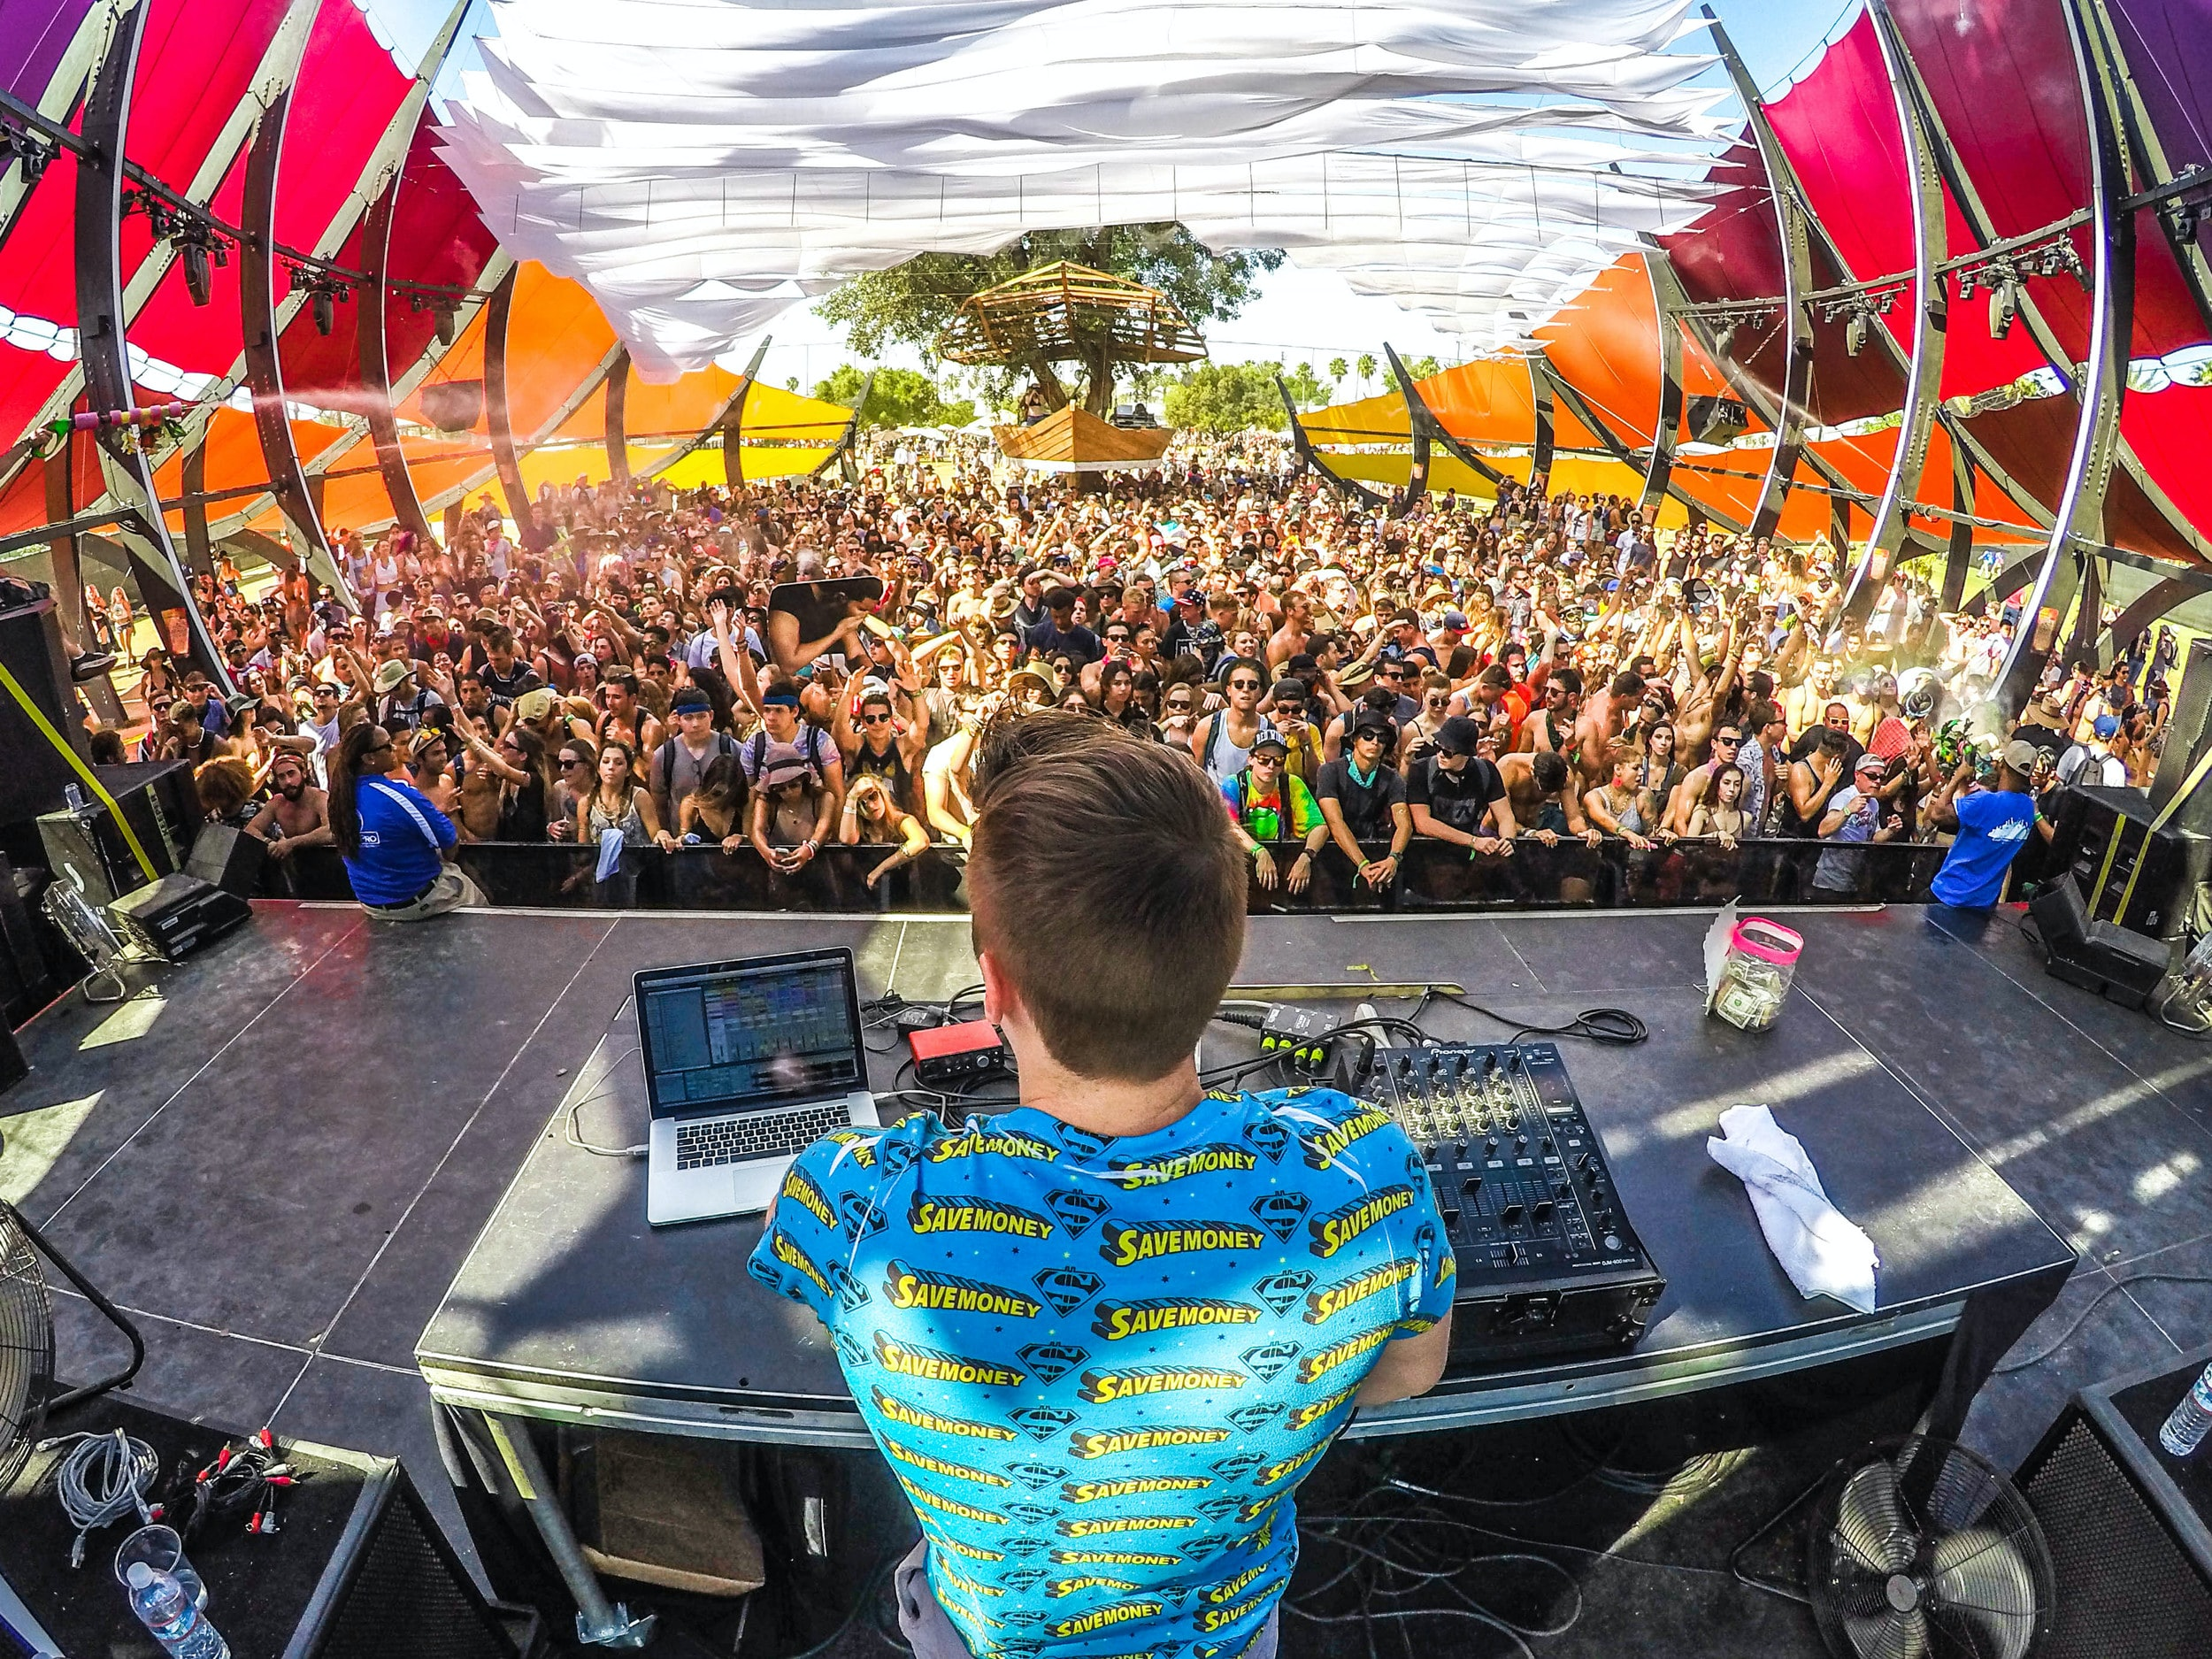 A DJ sitting at a turntable with a laptop nearby during a music festival